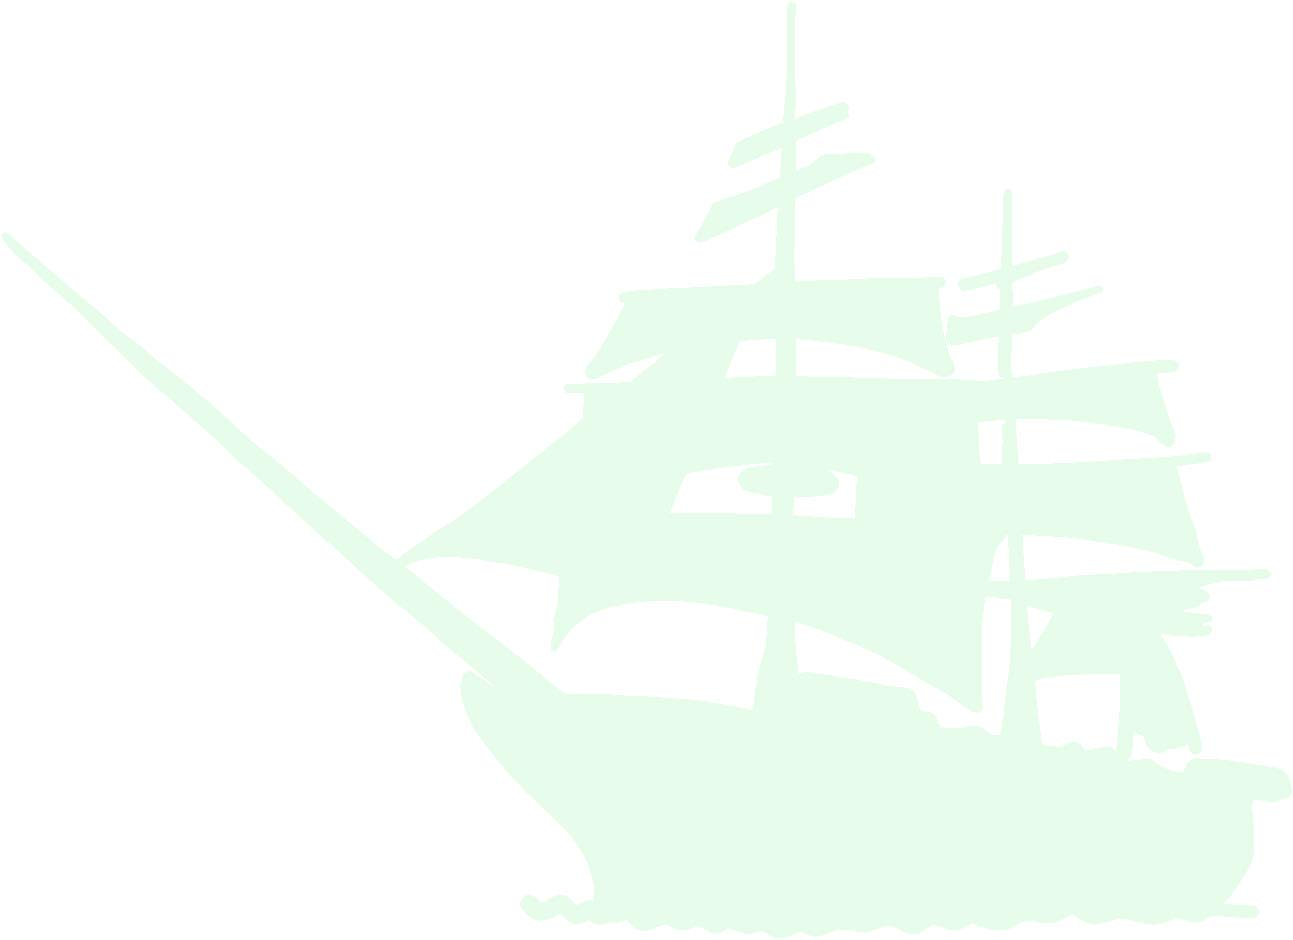 hBARSCI Battle Sail Ship Vinyl Decal - 5 Inches - for Cars, Trucks, Windows, Laptops, Tablets, Outdoor-Grade 6mil Thick Vinyl - Glow in The Dark